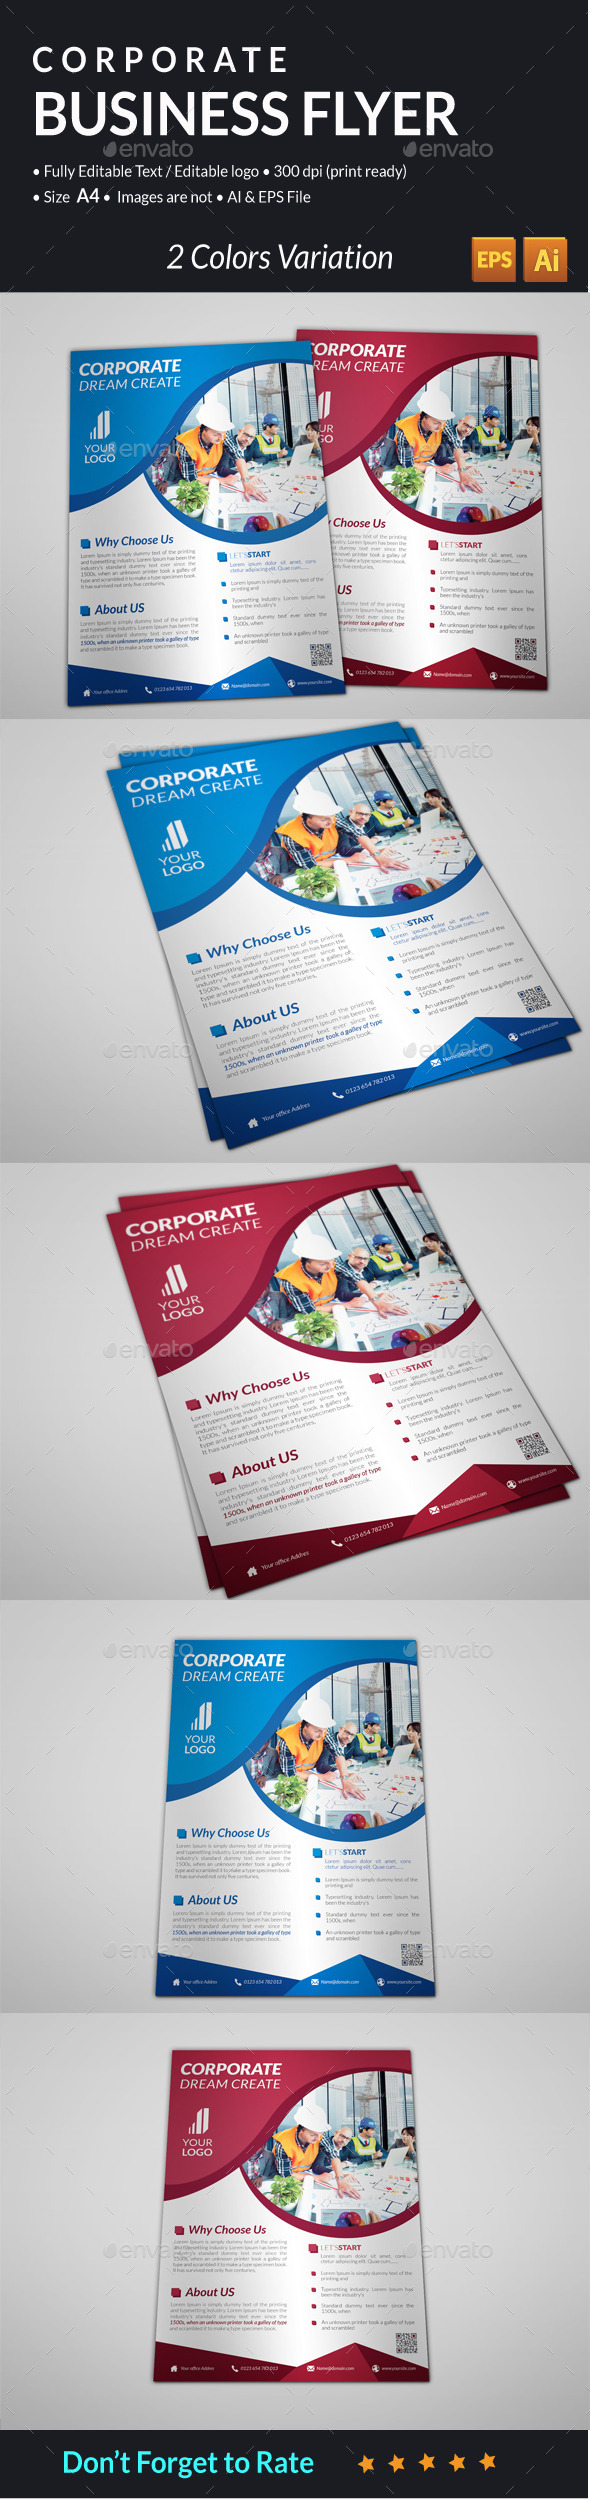 GraphicRiver Corporate Business Flyer 11032653